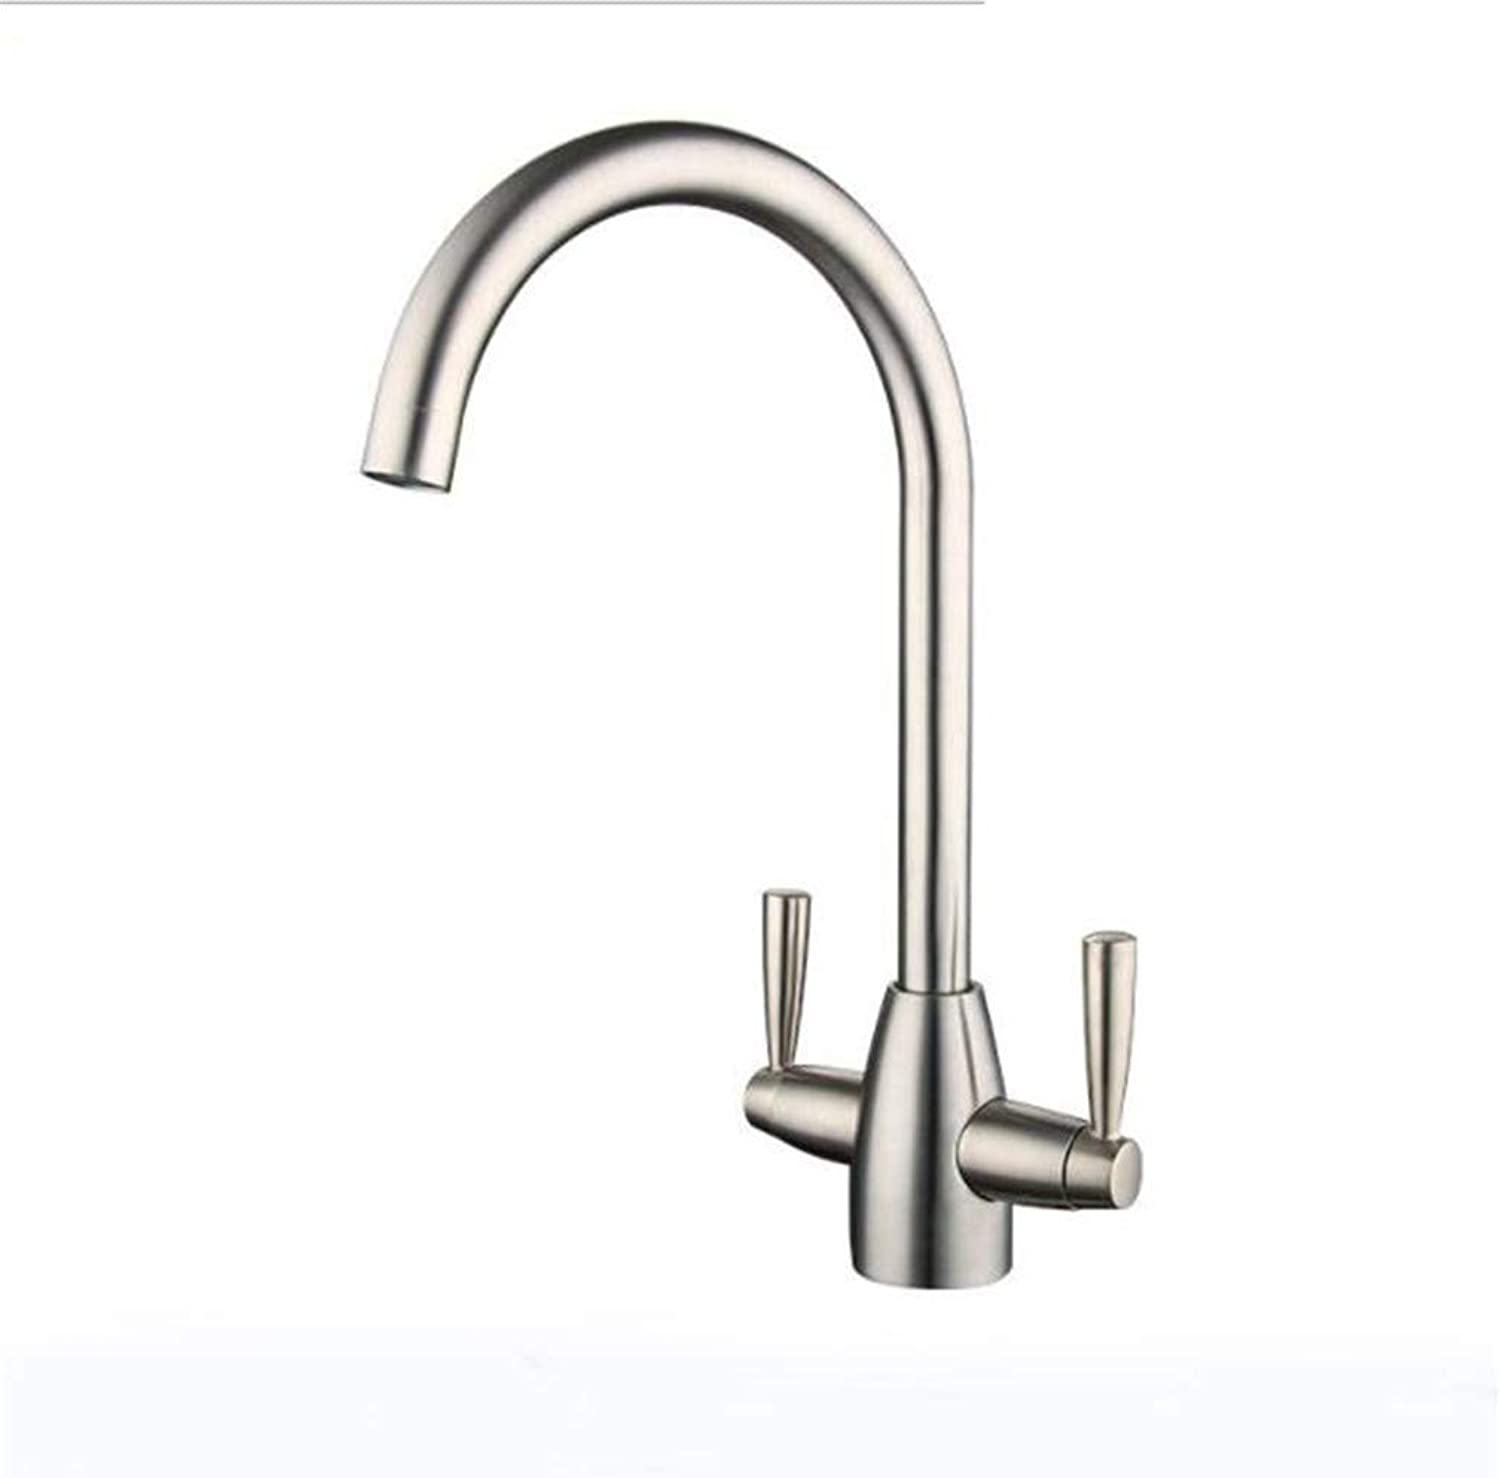 Bathroom Sink Basin Lever Mixer Tap 304 Stainless Steel Faucet Kitchen Sink Double Cold and Hot Water Stainless Steel Dishwasher Faucet